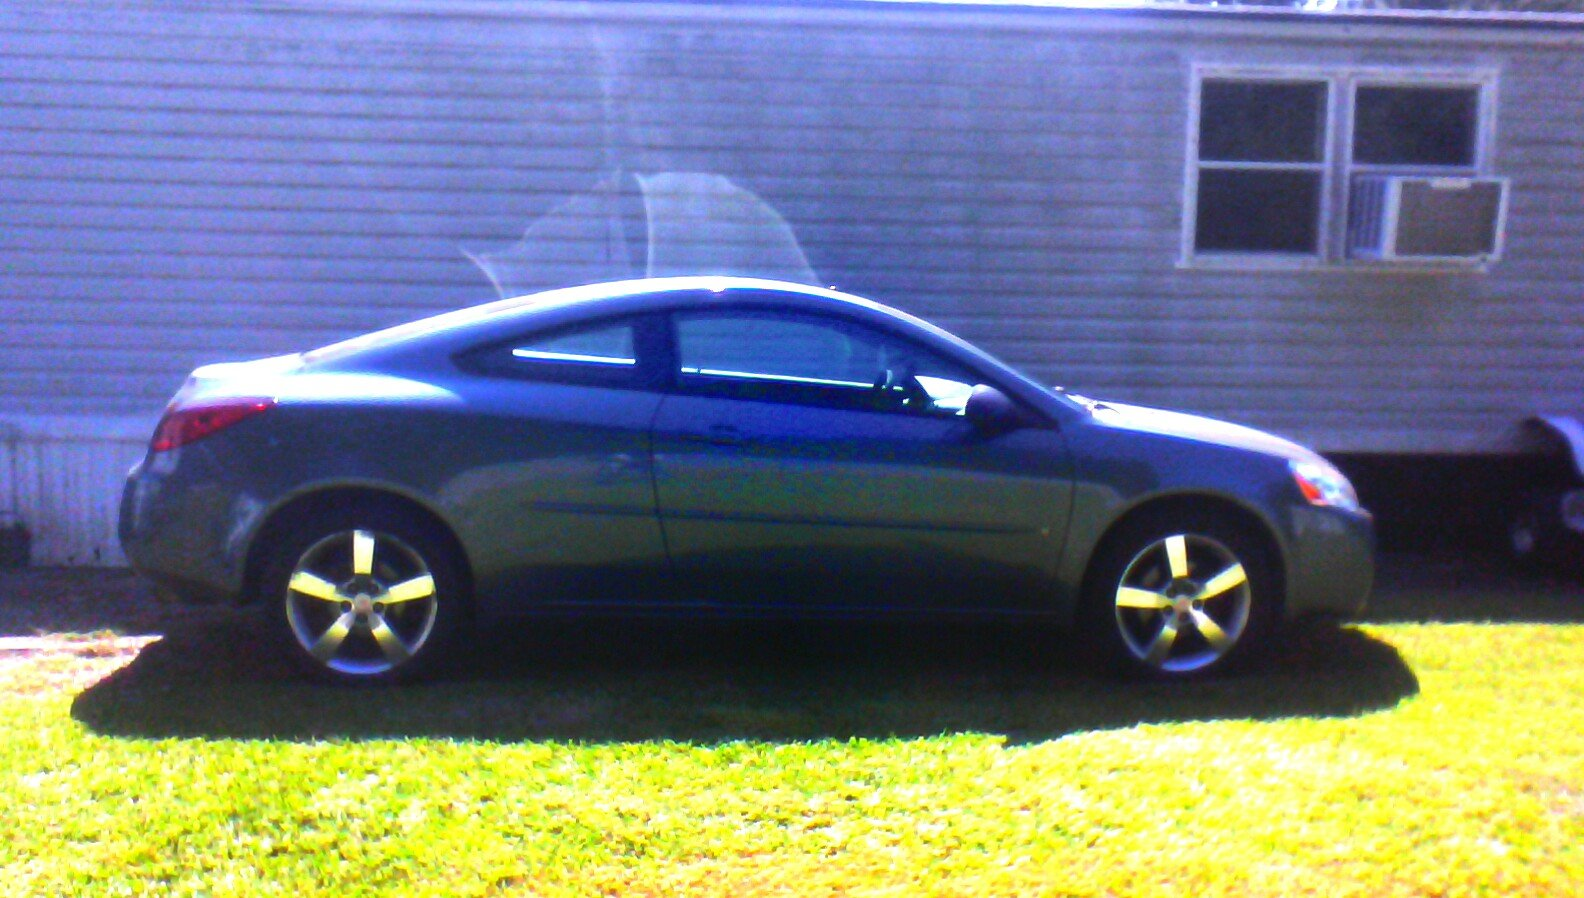 Pontiac G6 Questions What Are The Most Common Issues For A 2006 Pontiac G6 Gtp Couple Cargurus